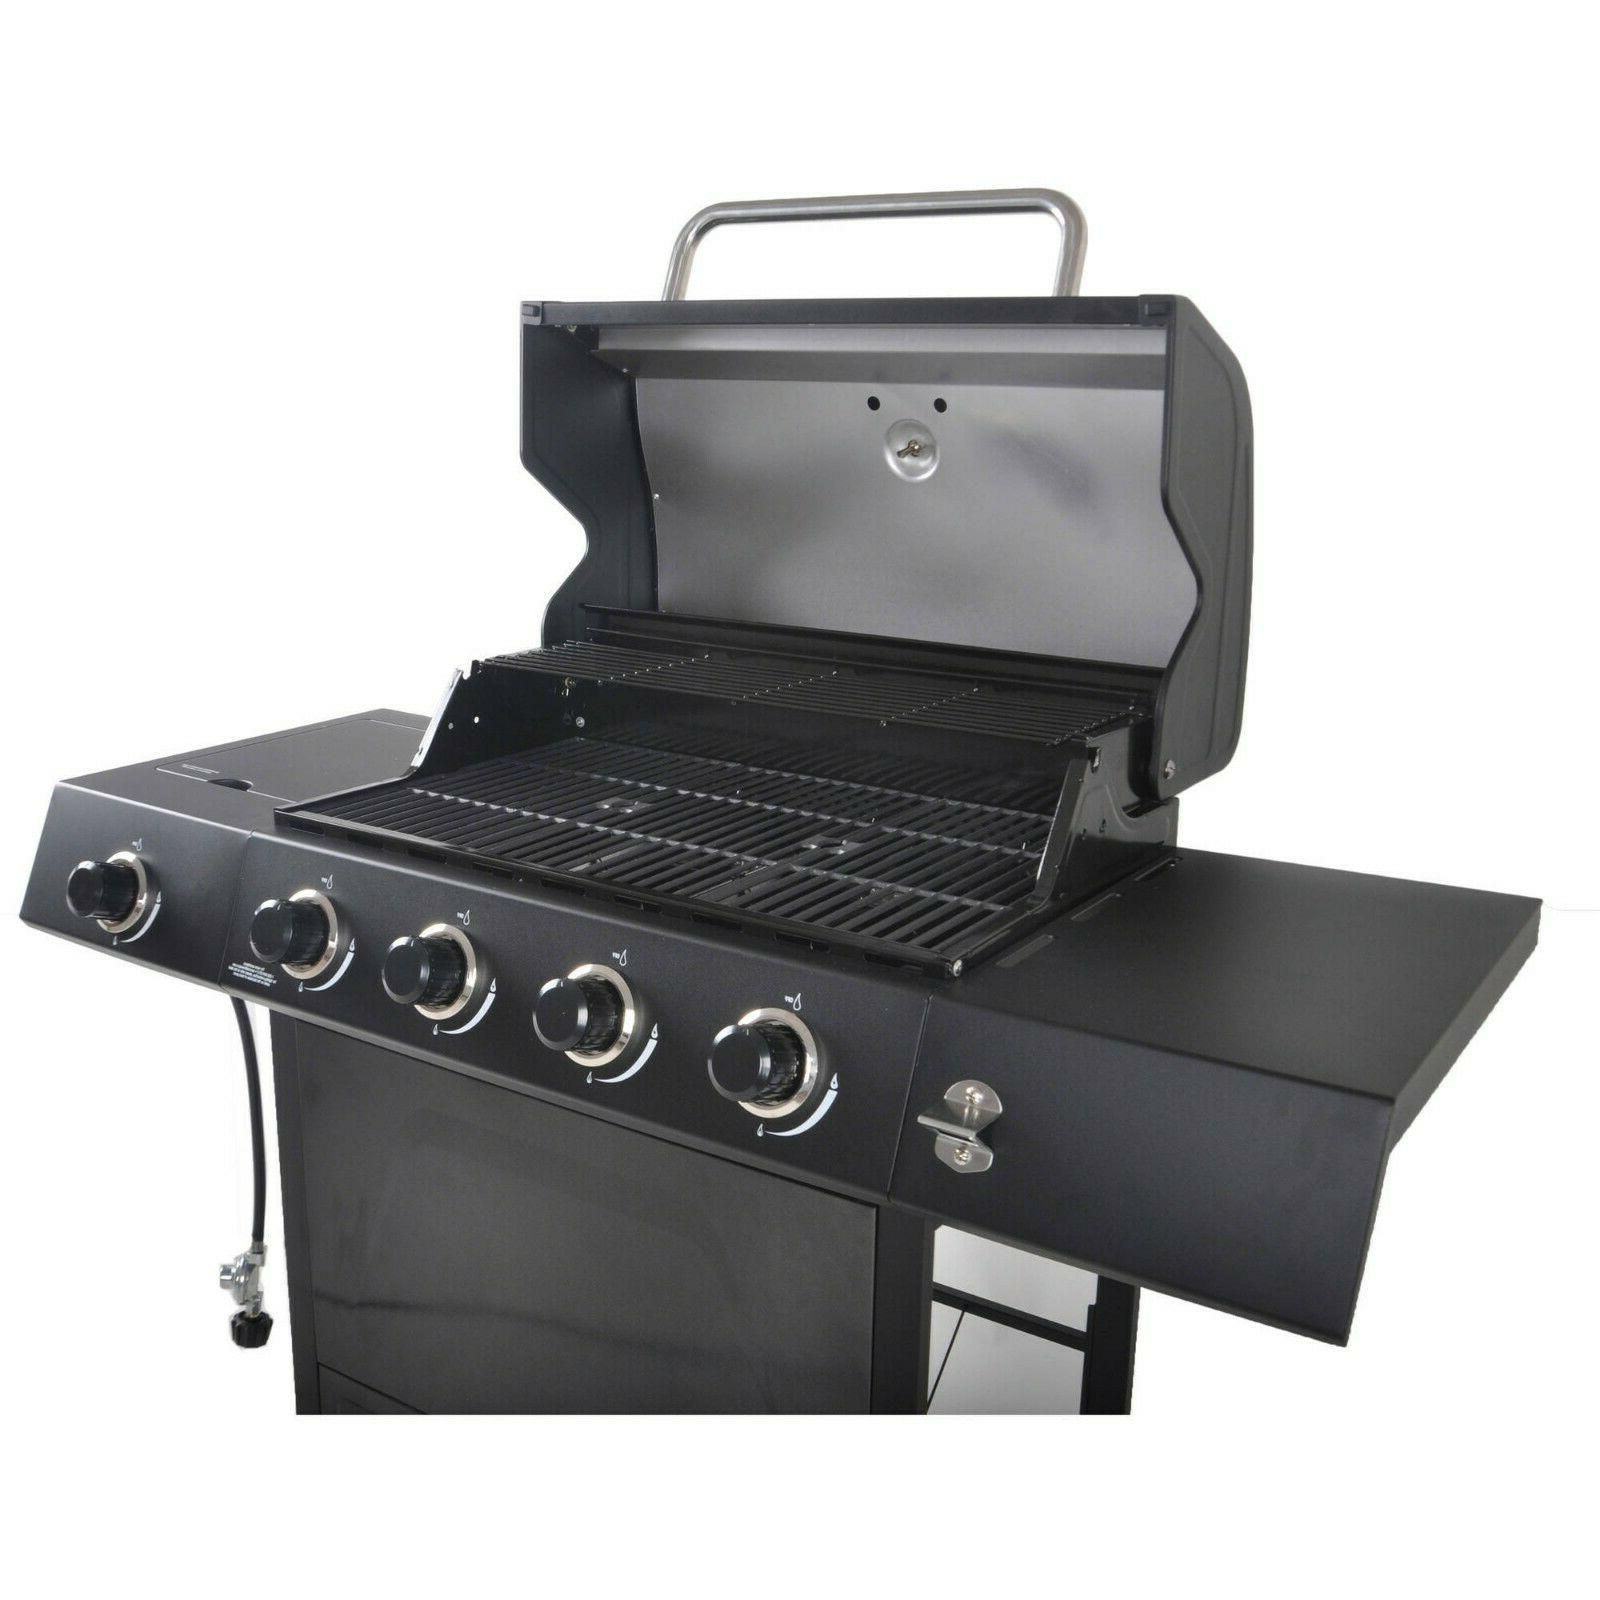 grill with side burner revoace 4 burner